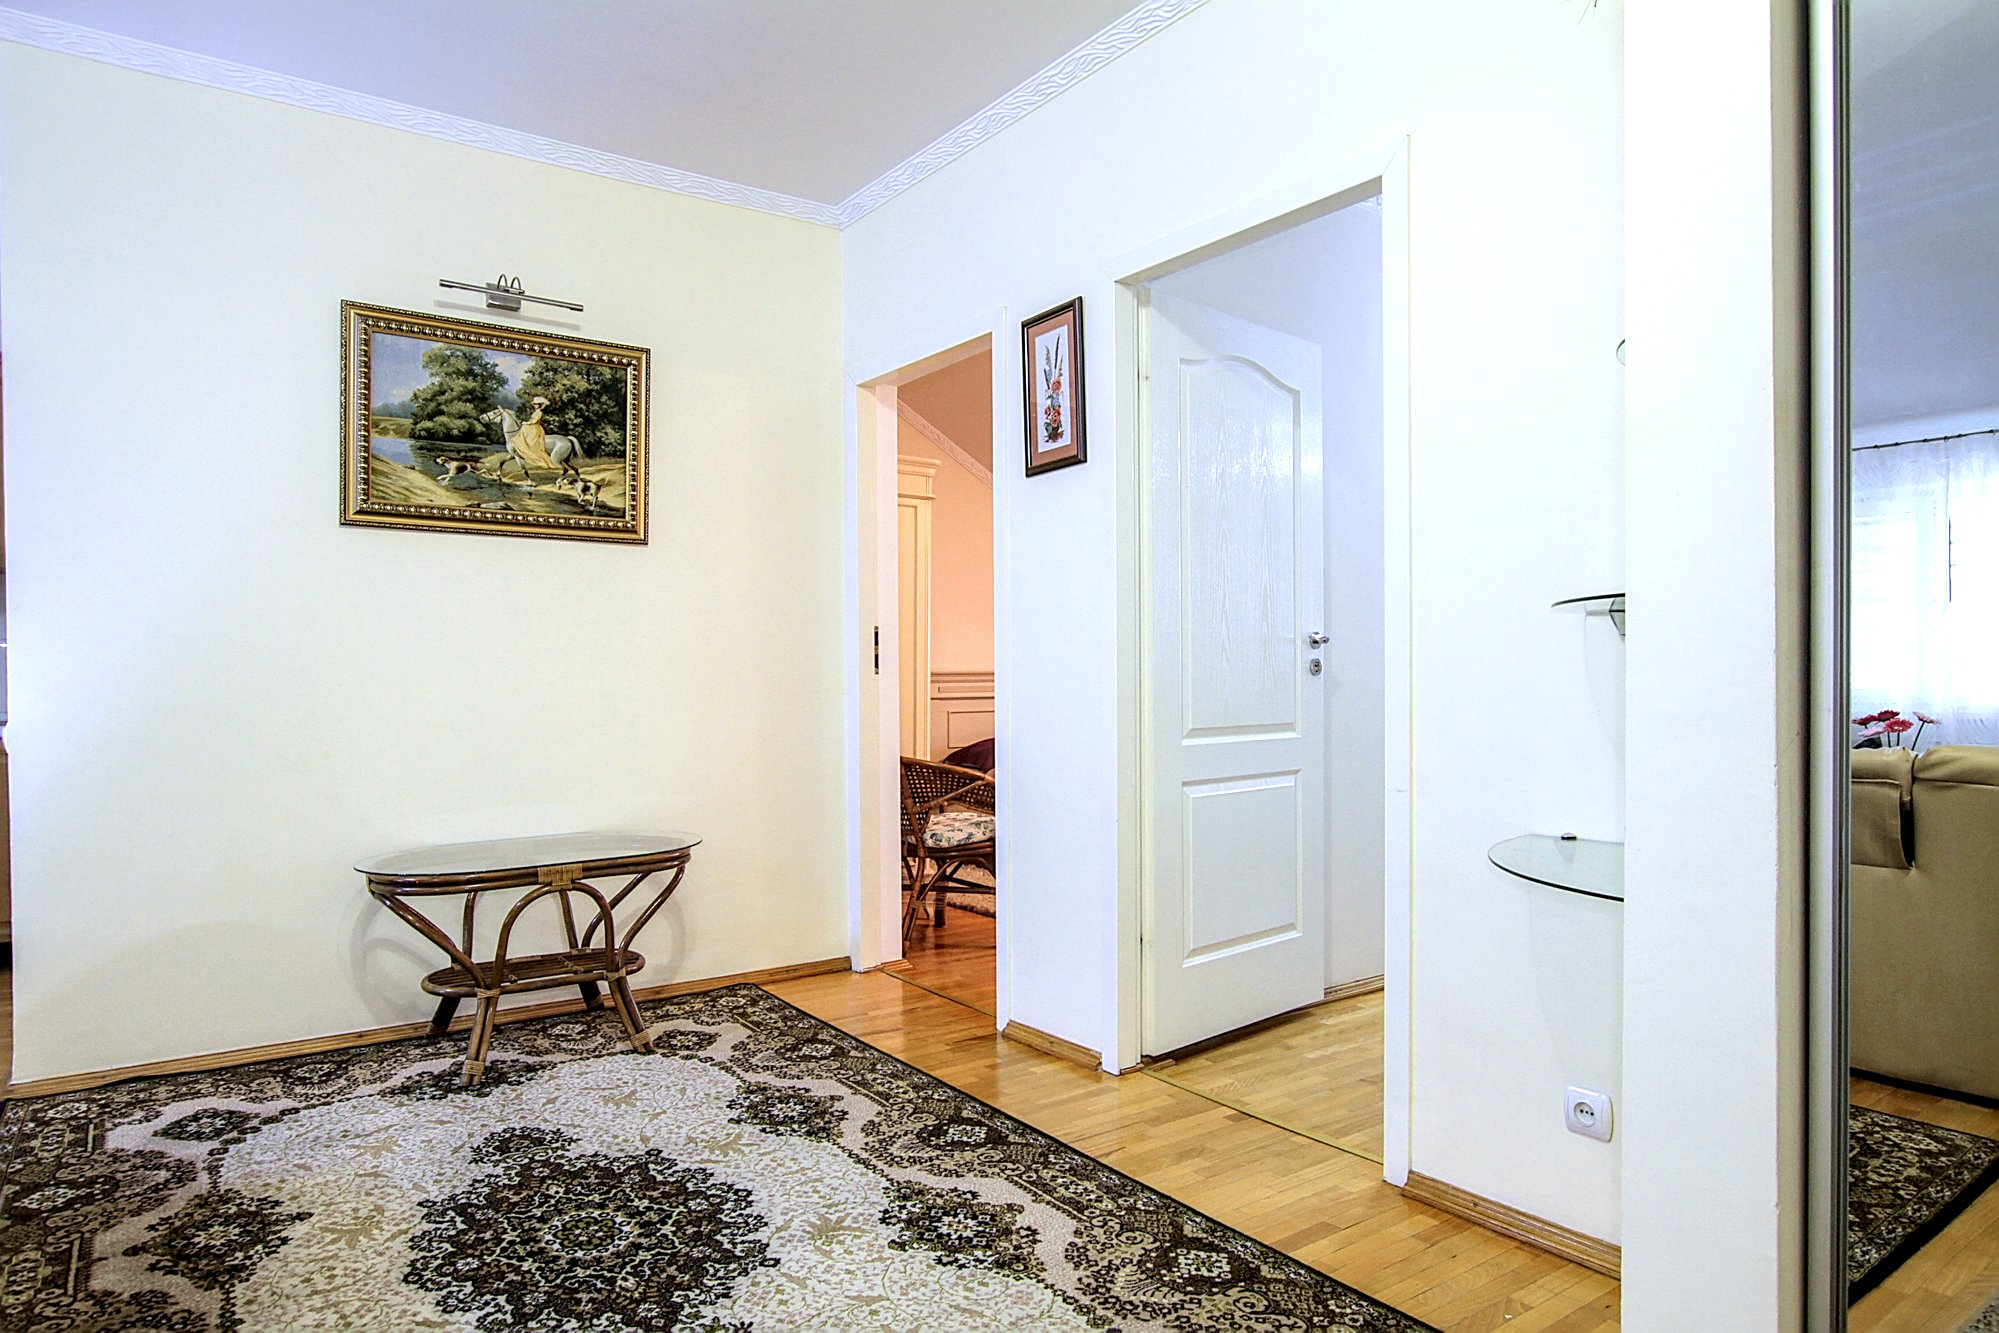 Large Central Apartment is a 3 rooms apartment for rent in Chisinau, Moldova